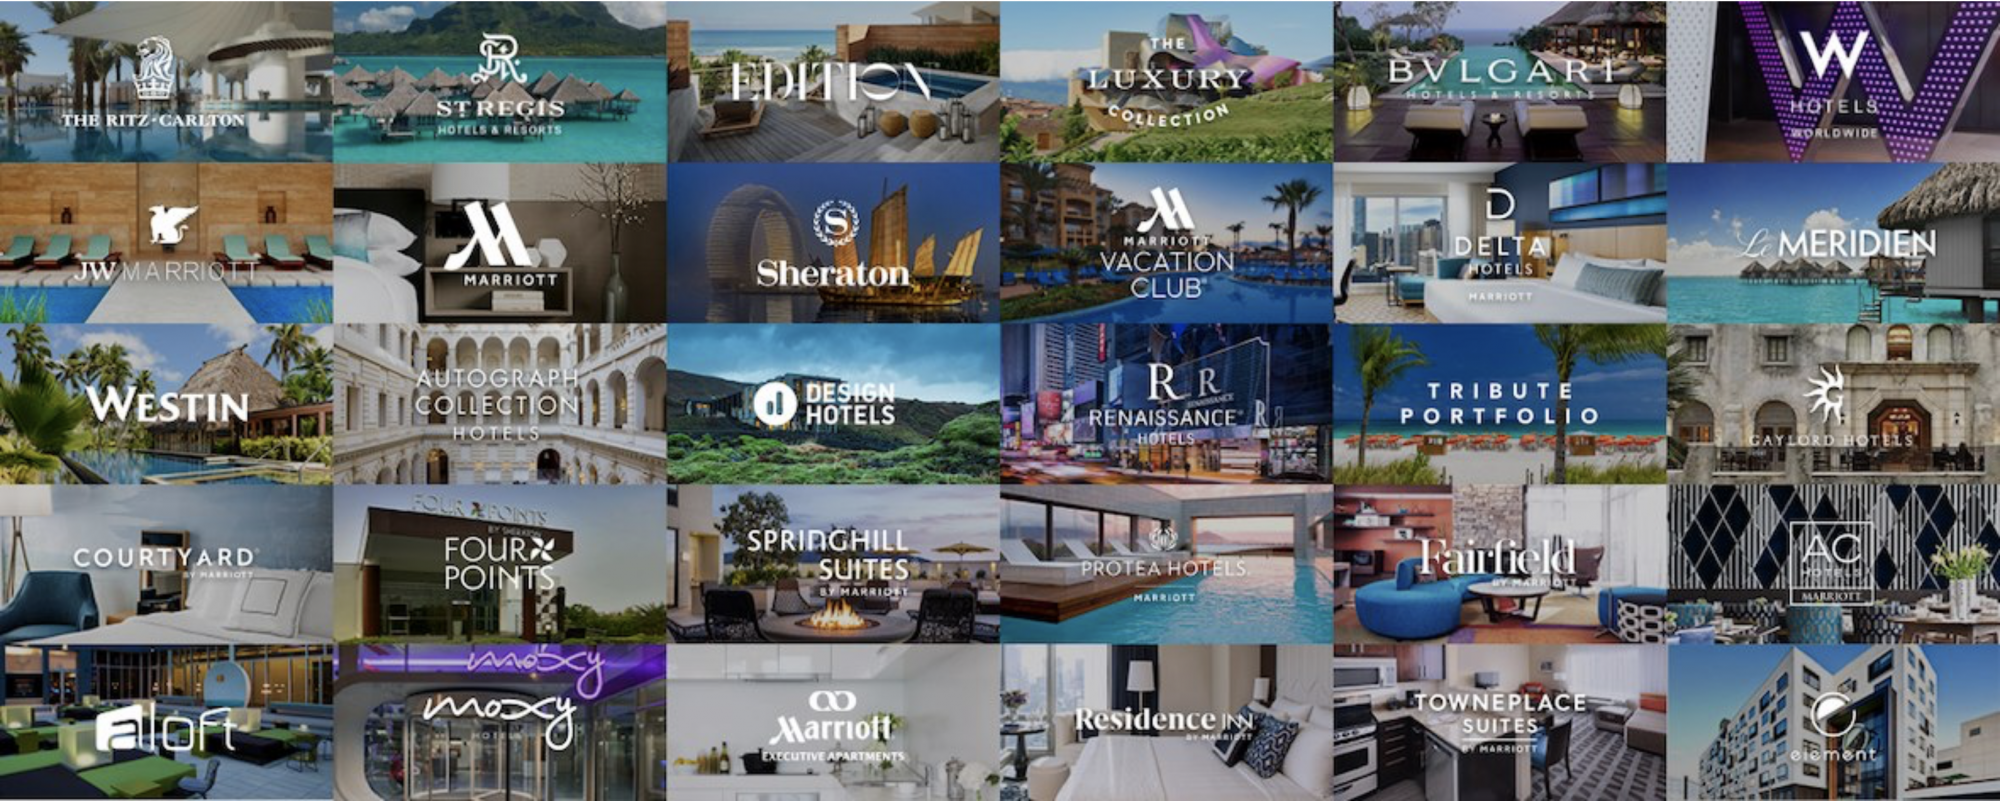 Will Your Favorite Marriott Brand Survive the Next 24 Months?